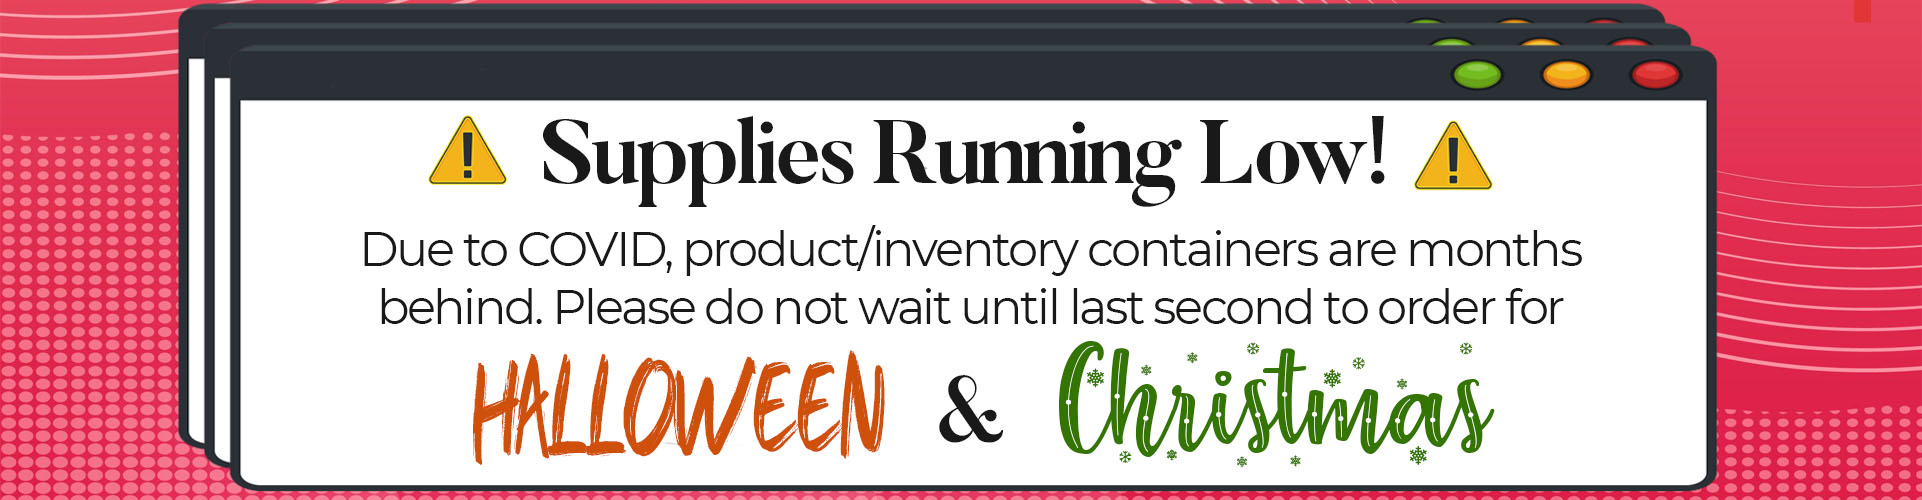 Do not wait to buy Haloween and Christmas items. Supplies are running low.